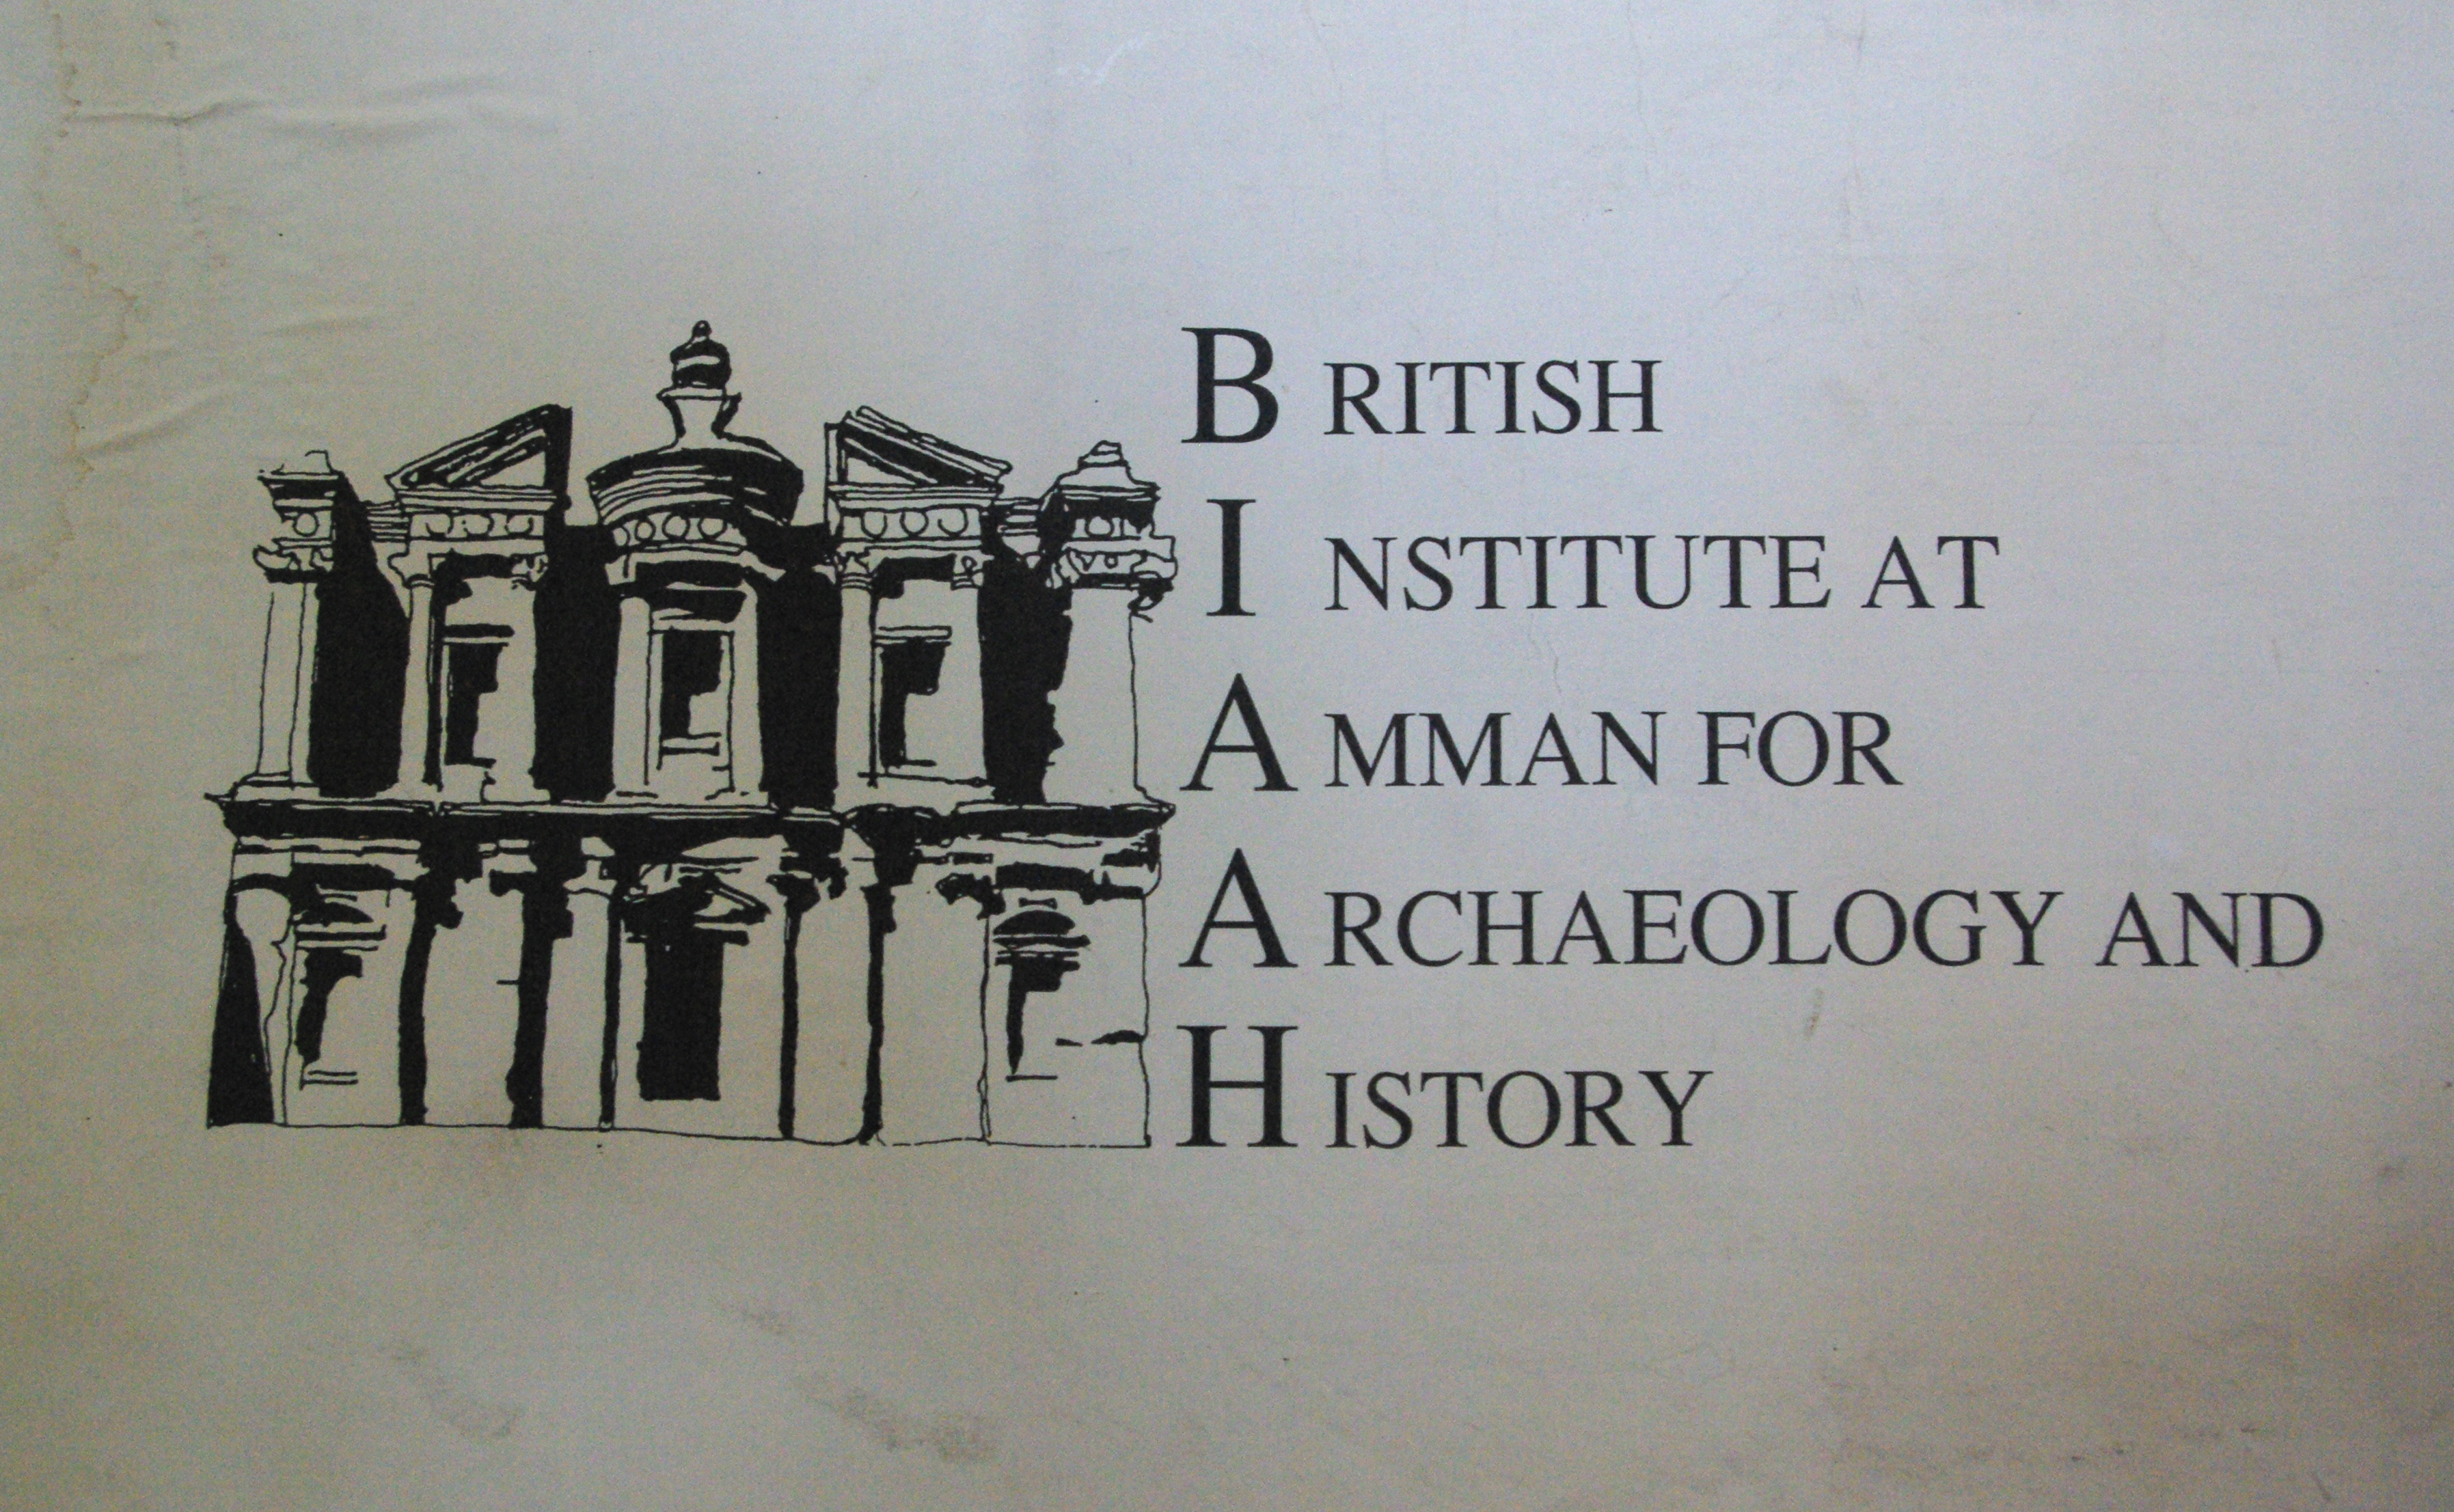 Christine Elias and the British Institute Amman Collections